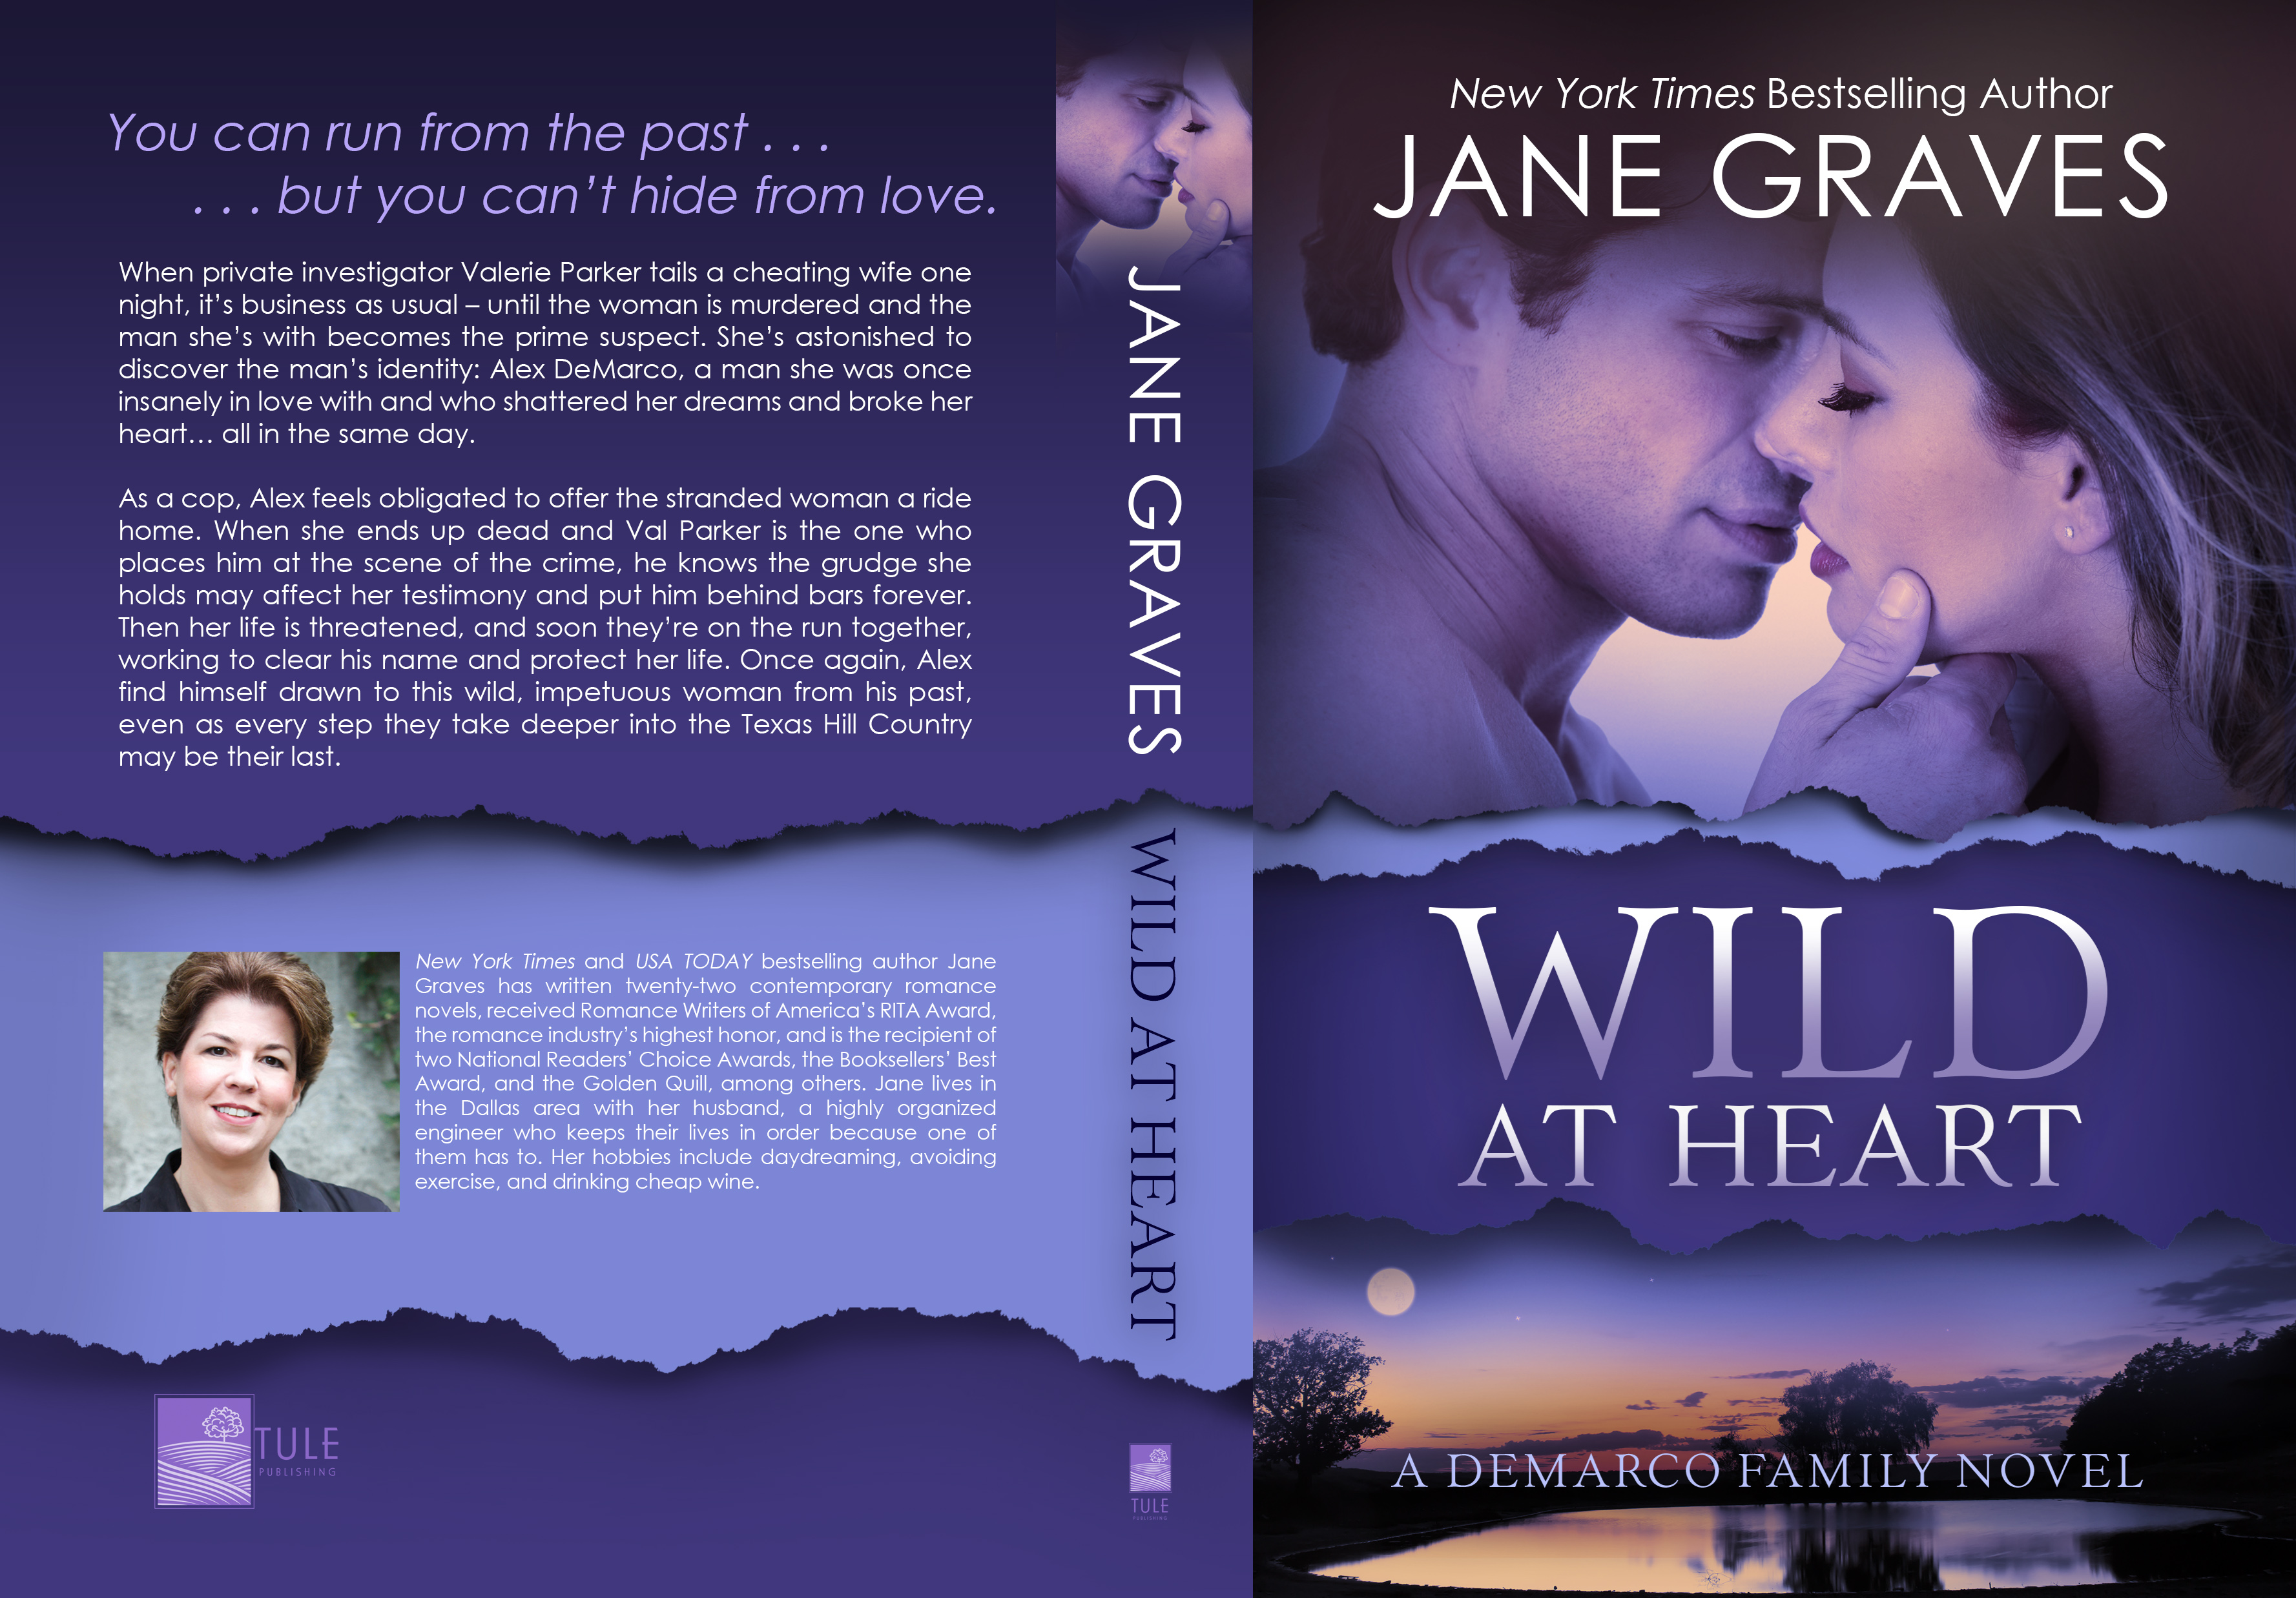 Wild at Heart 5_25 x 8 at 432 pages crea